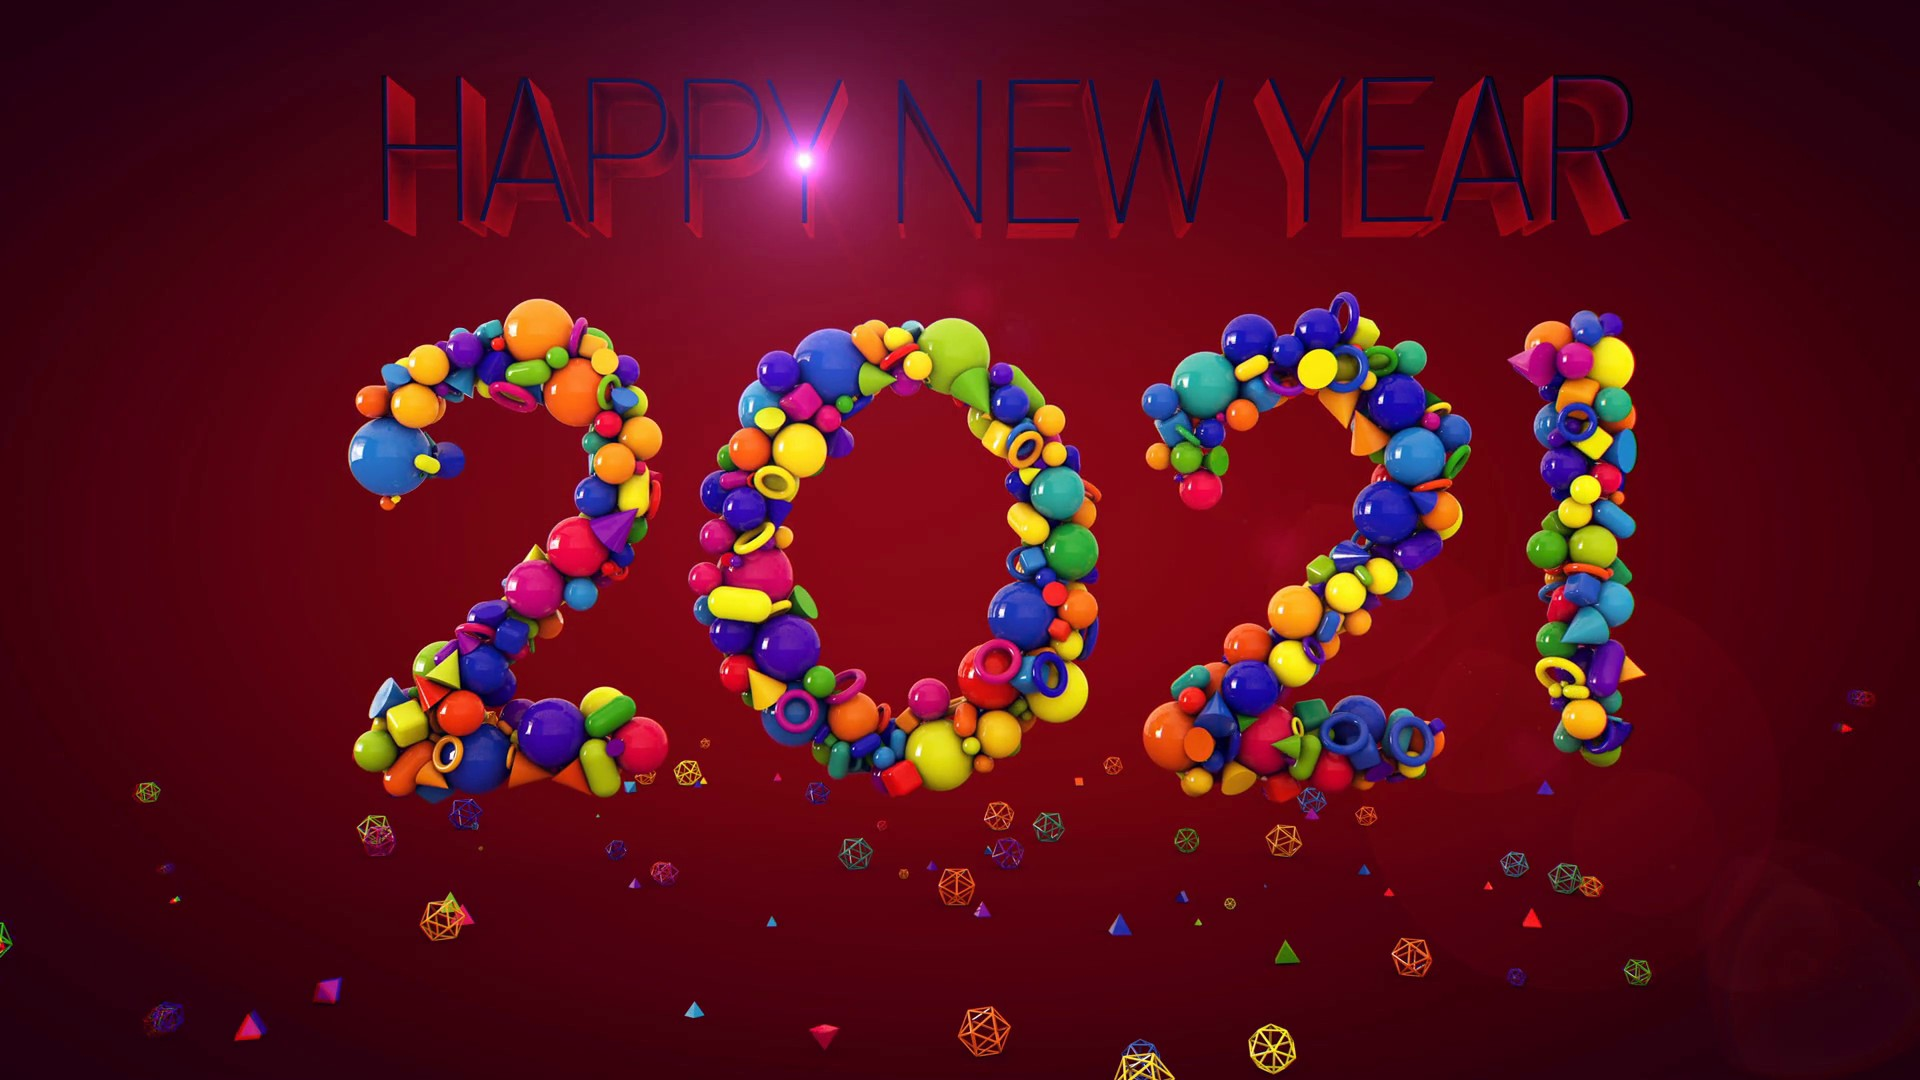 New Year 2021 Wallpaper for pc